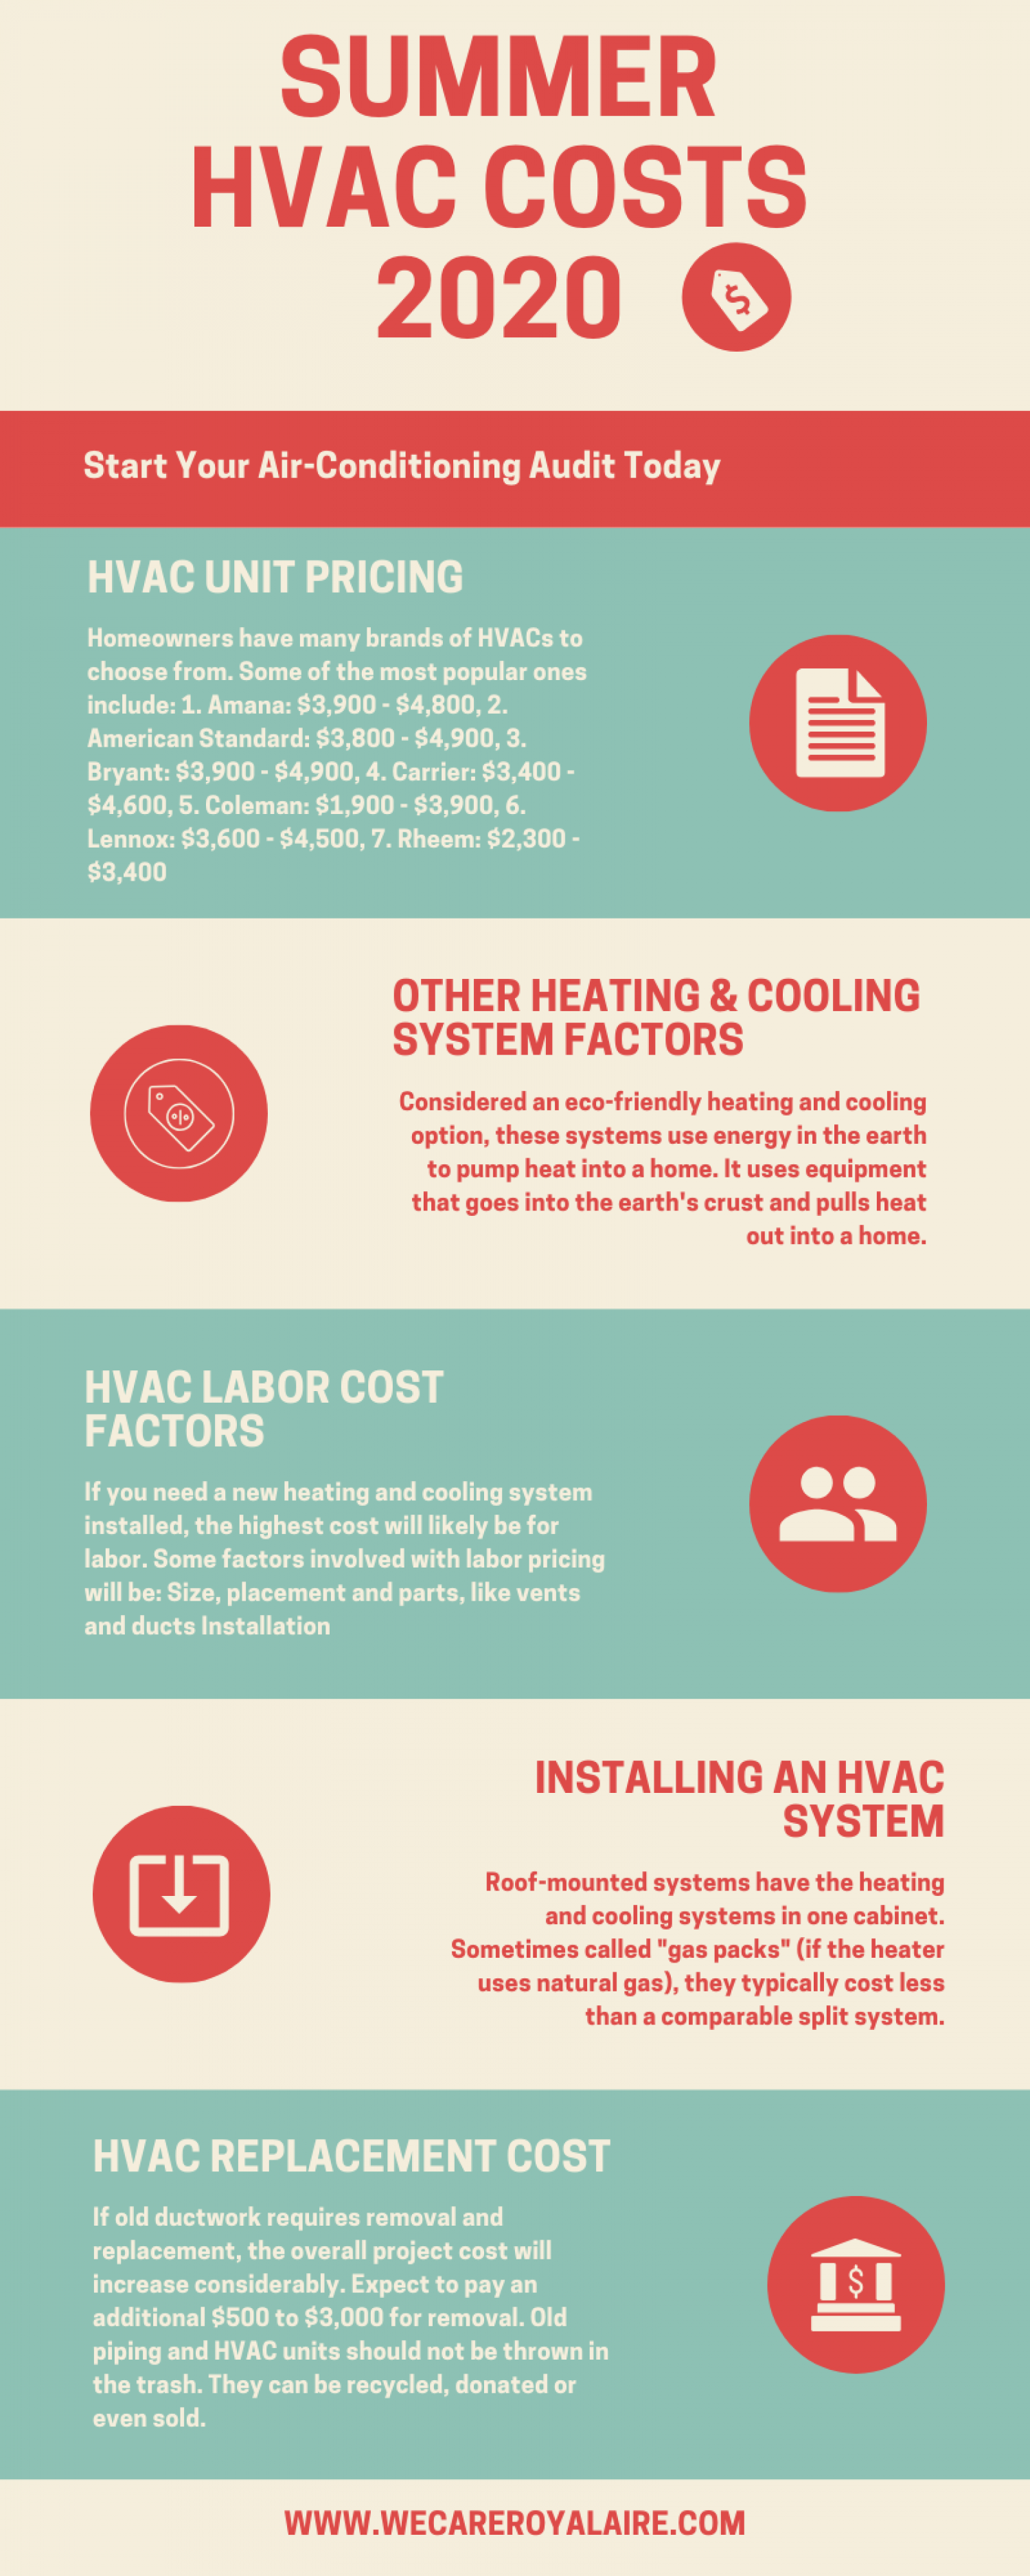 Summer HVAC Costs 2020 Infographic